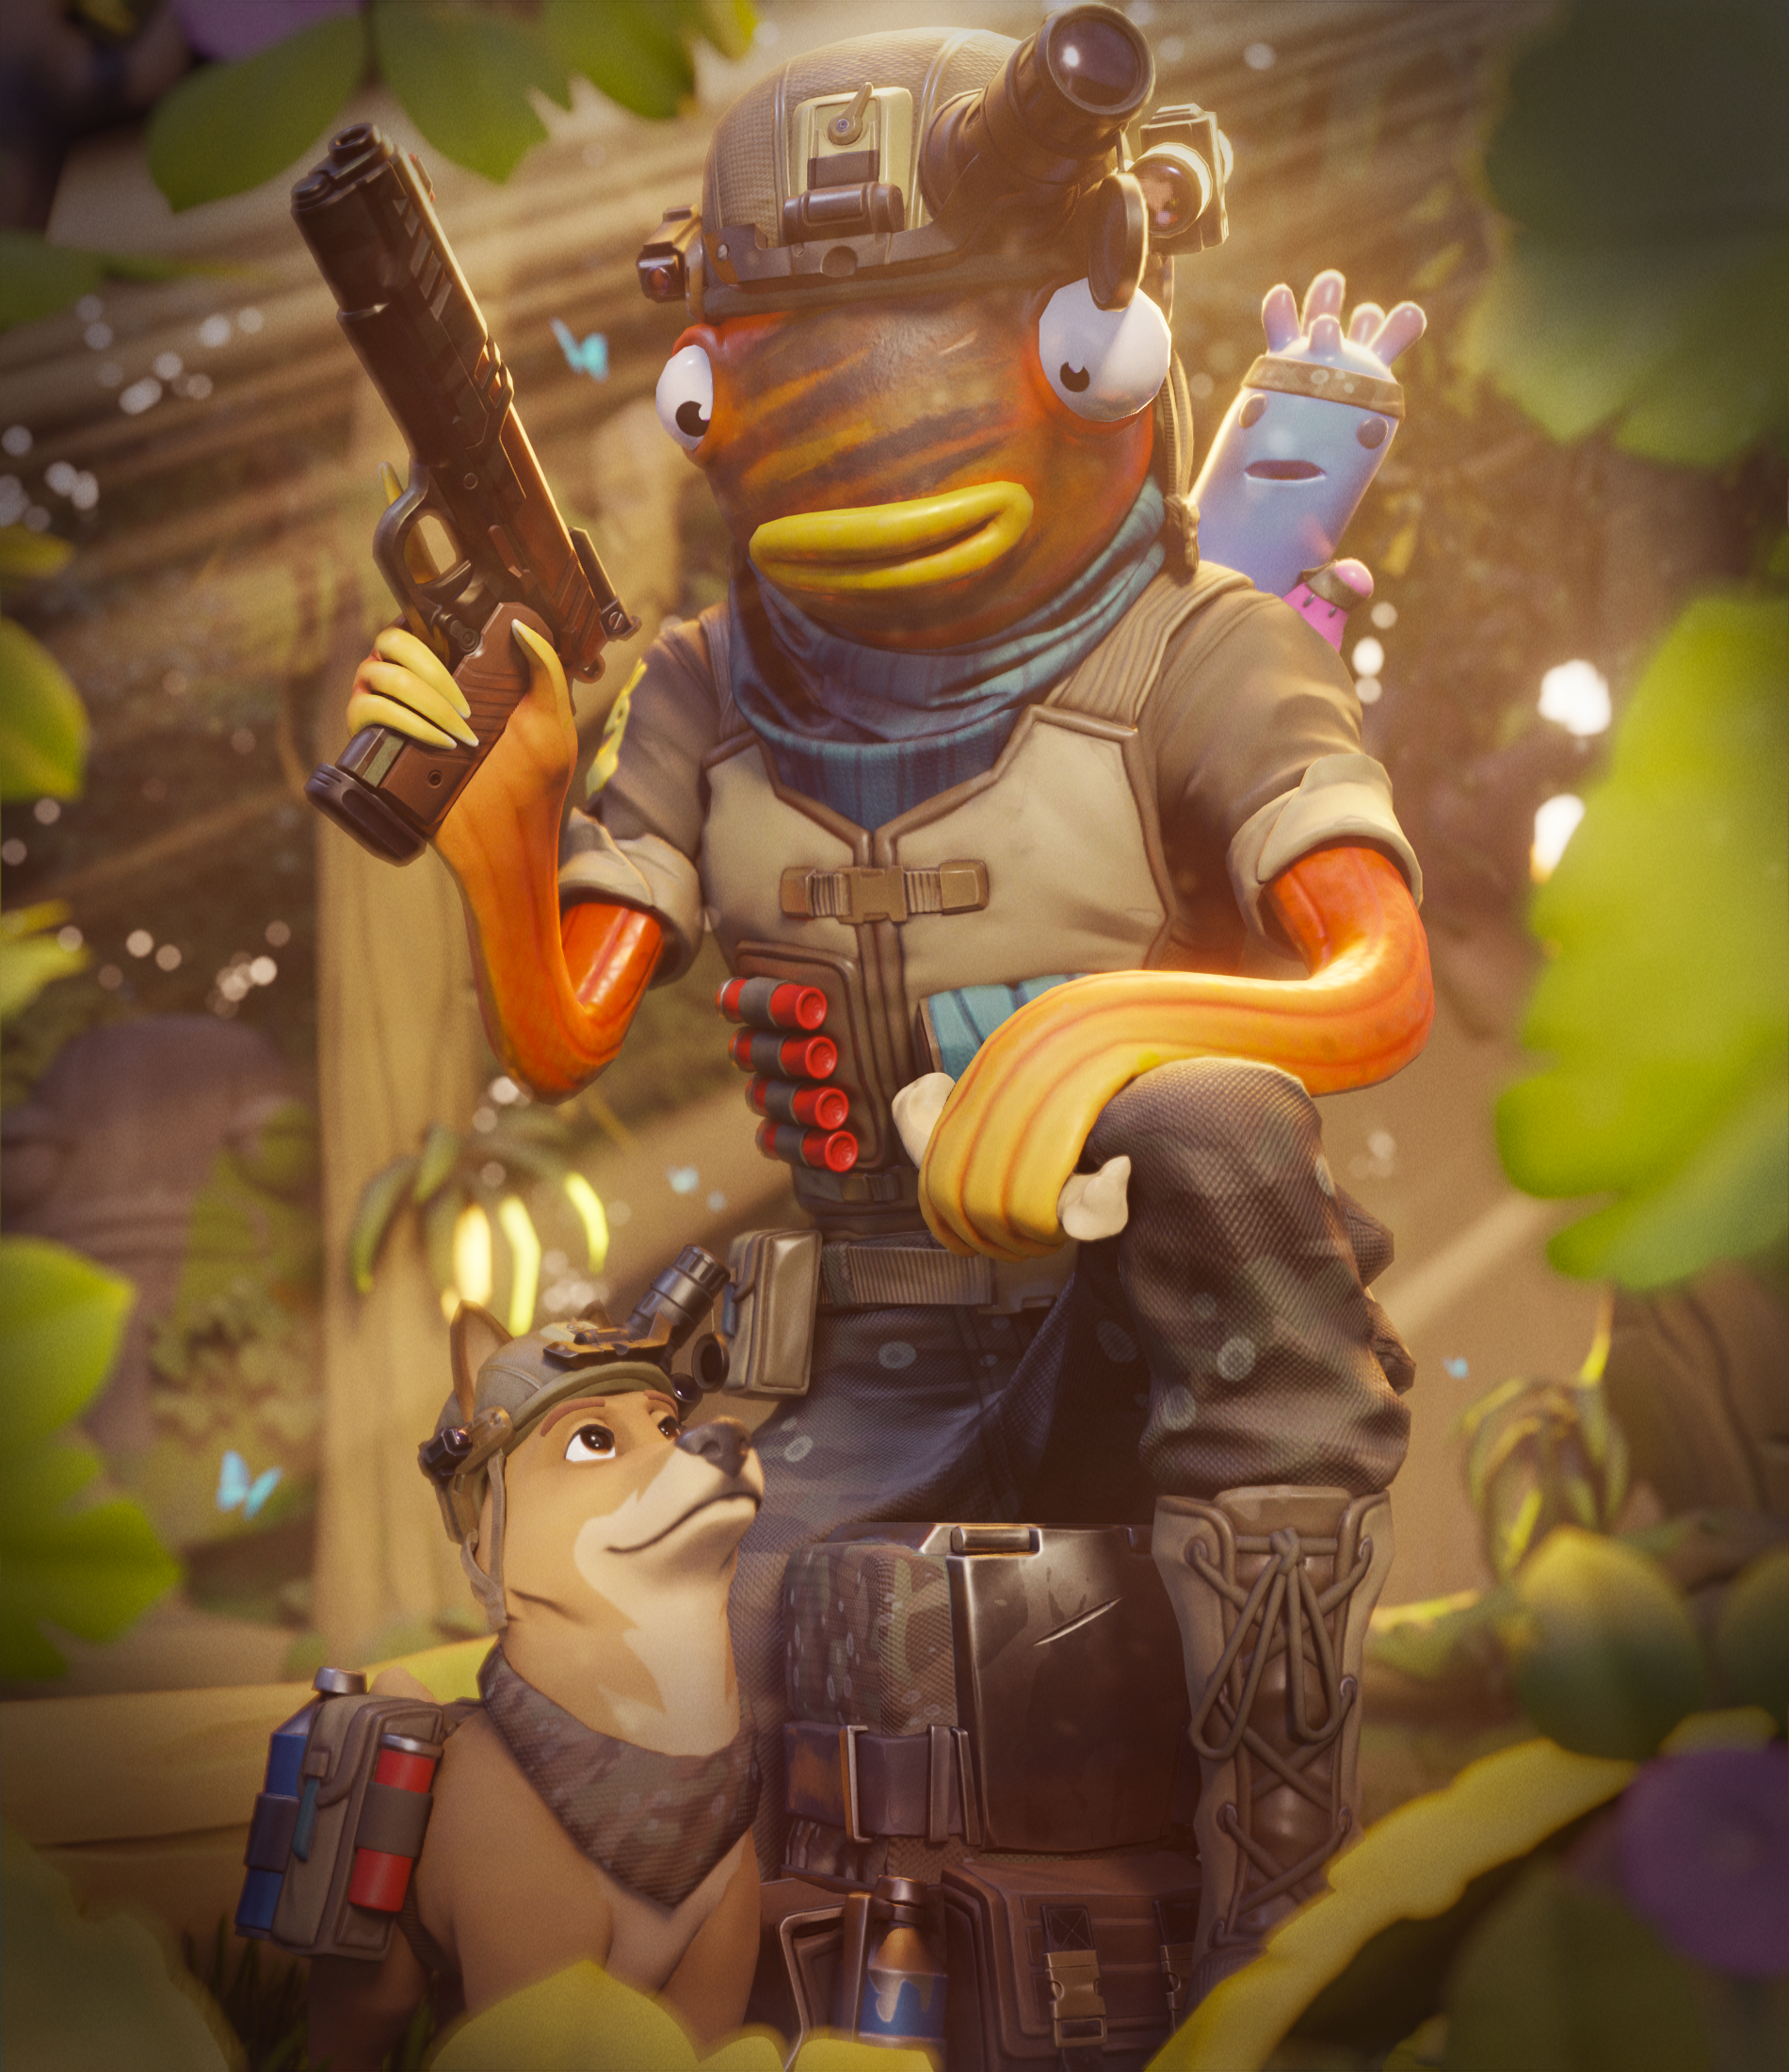 Fortnite Art Fanart In 2020 Gaming Wallpapers Best Gaming Wallpapers Gamer Pics